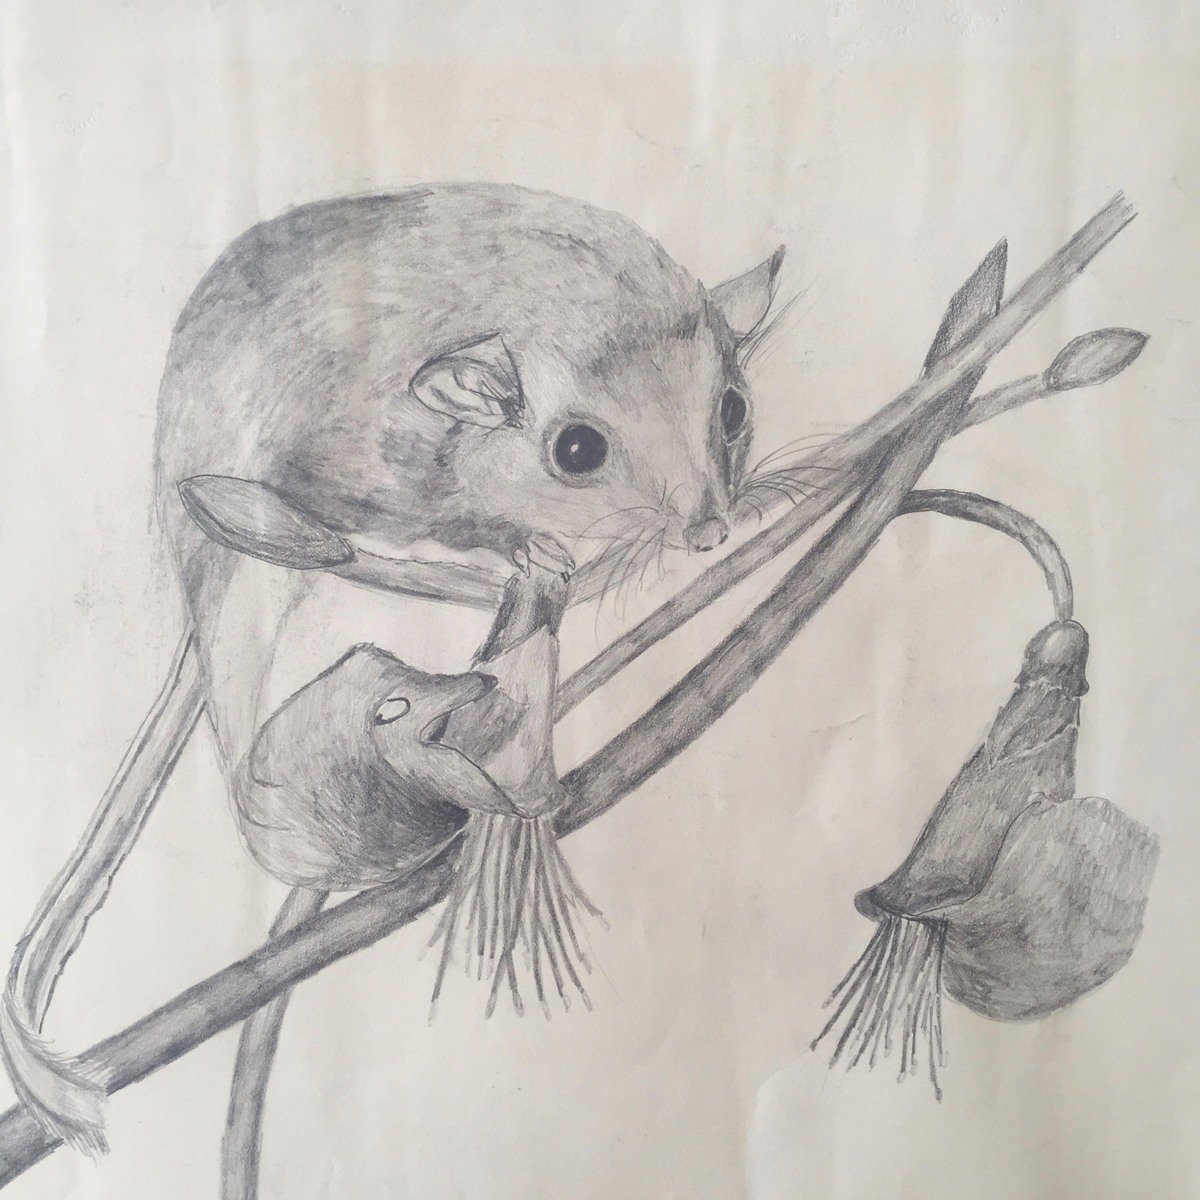 Nicole's interests in art and nature were apparent early on; a sketch from her high school art class